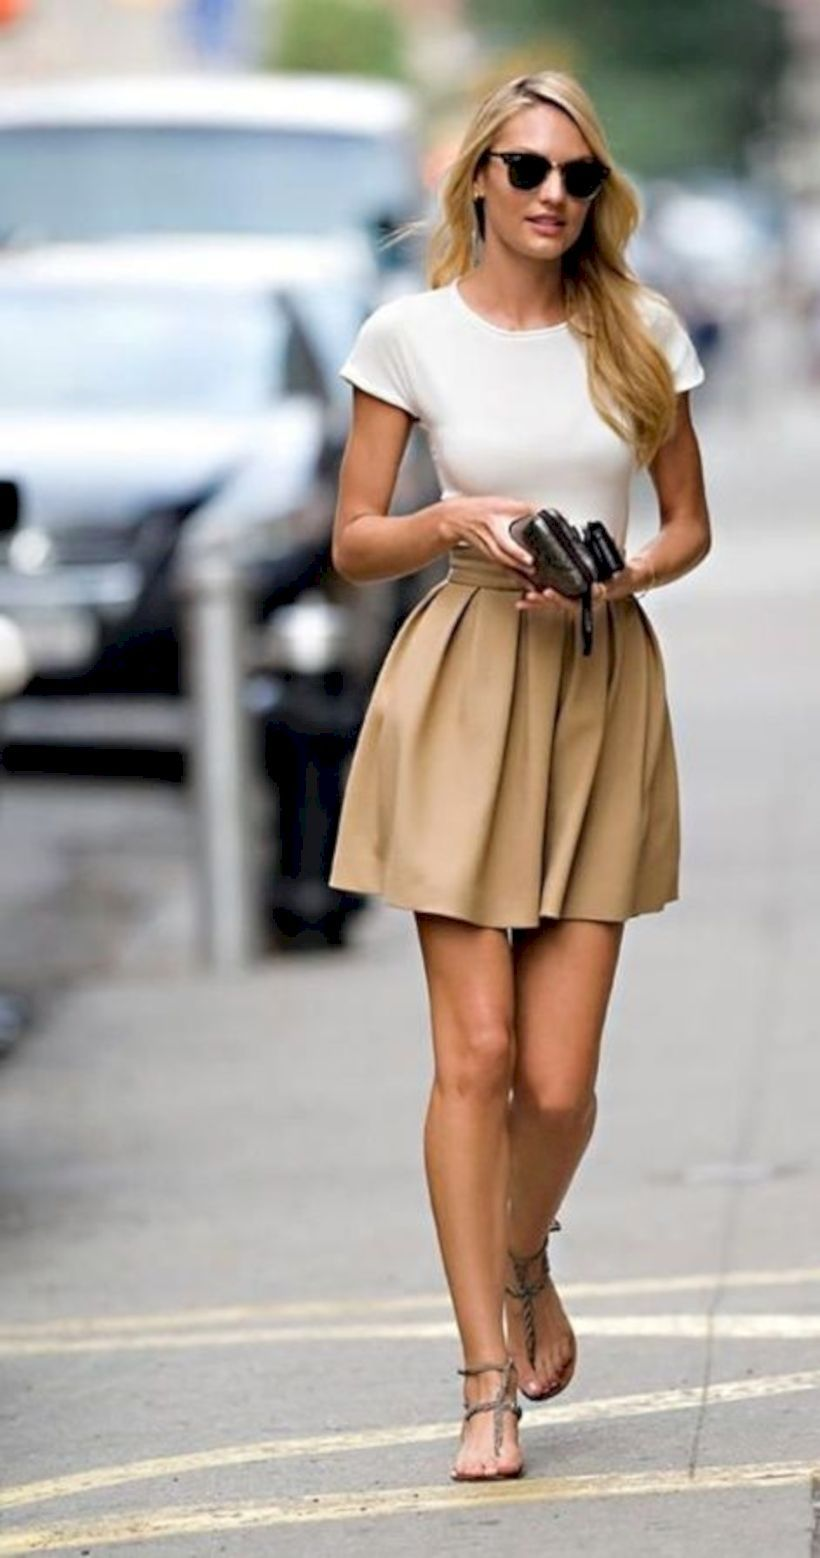 nice 30 classy women outfits ideas for summer https